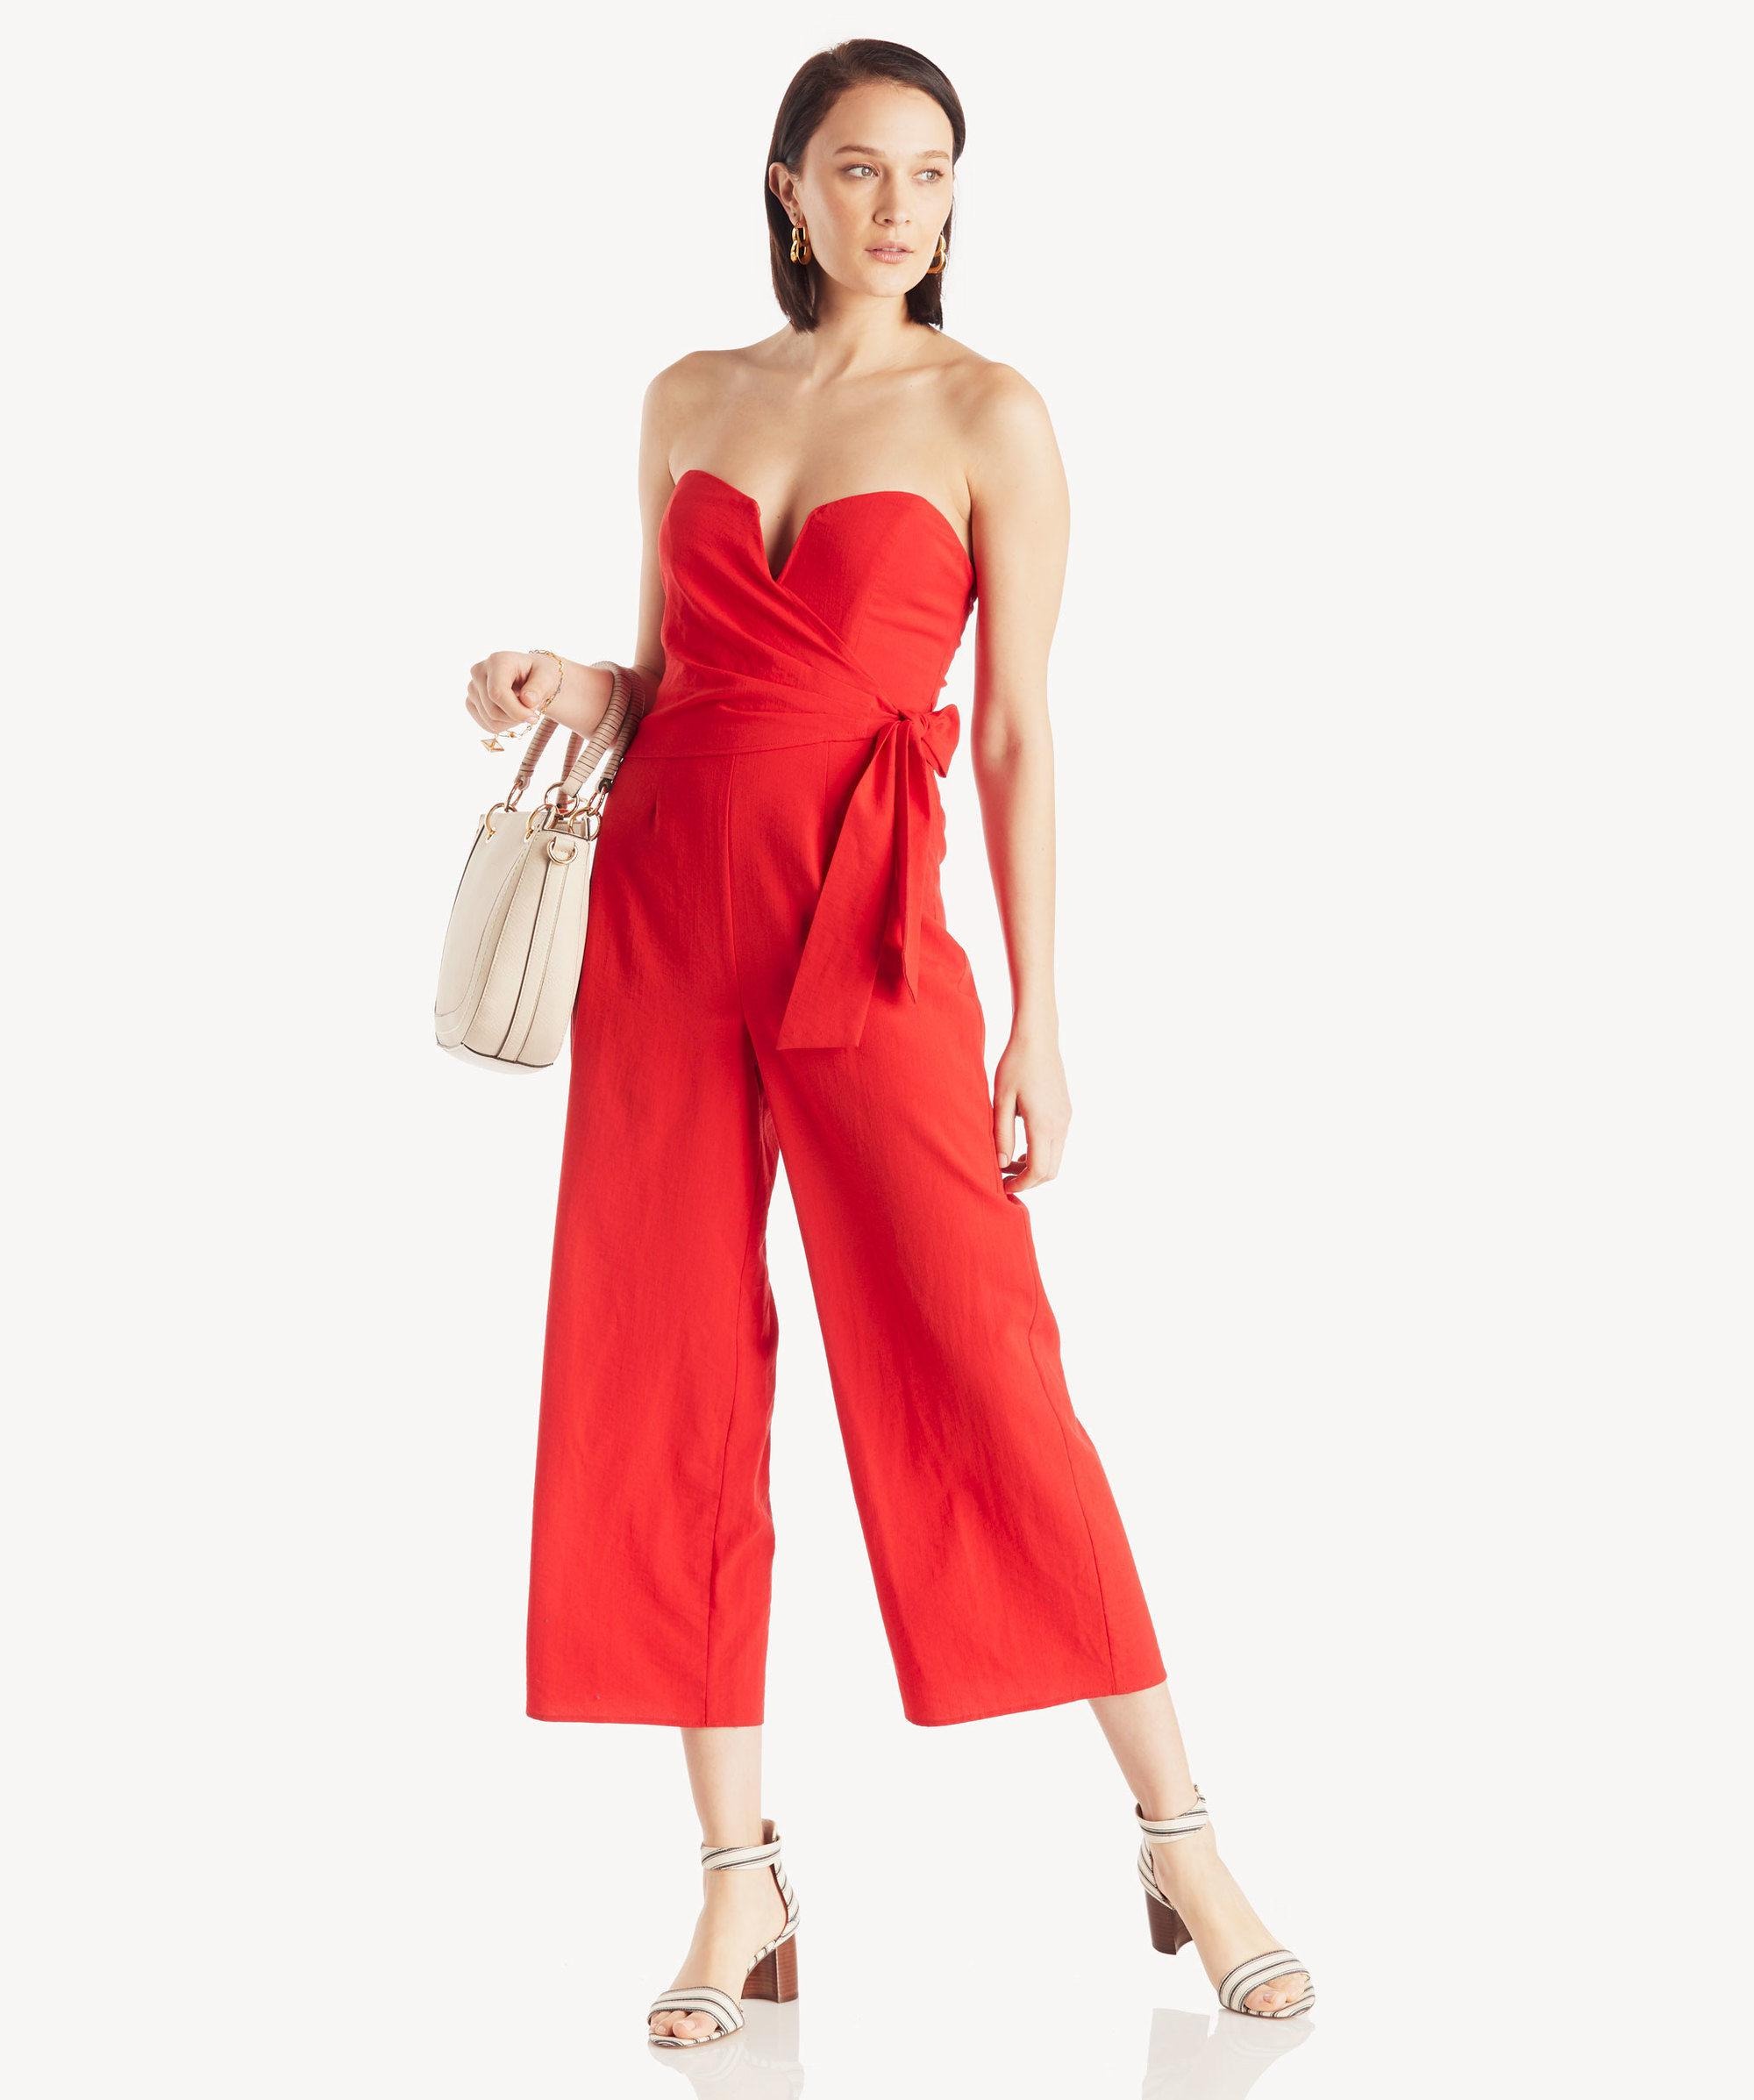 72ce52dc2a4 Lyst - Astr Zion Jumpsuit Fire Red in Red - Save 1%